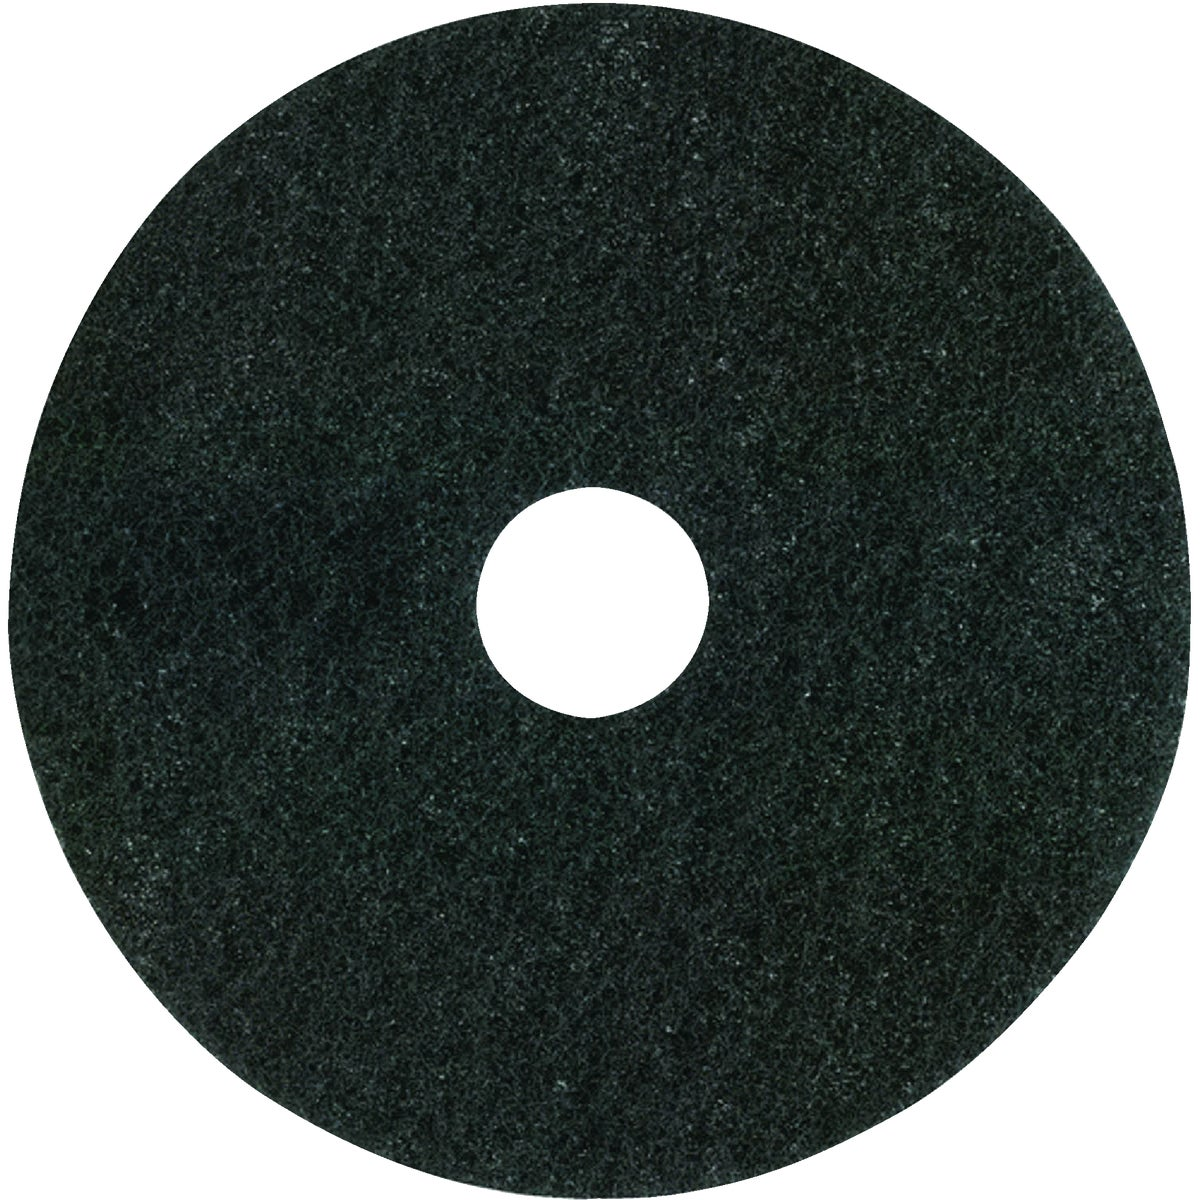 "20"" BLACK STRIPPING PAD - TKL20B by Lundmark Wax Co"